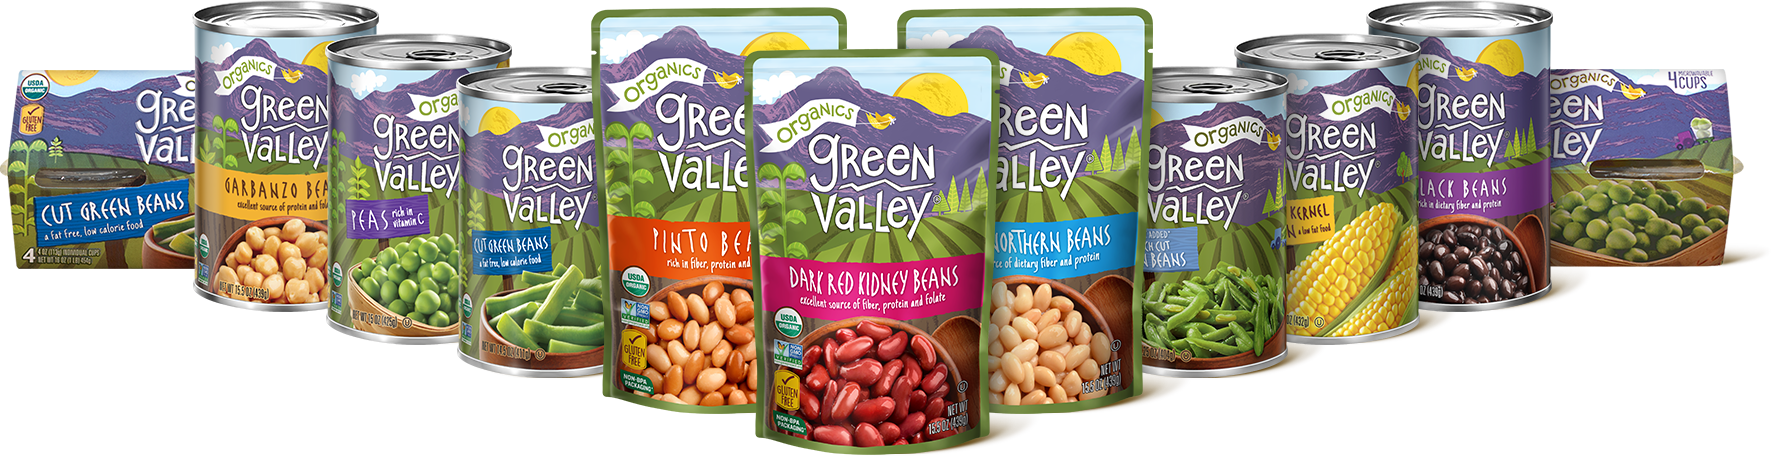 Green Valley Products